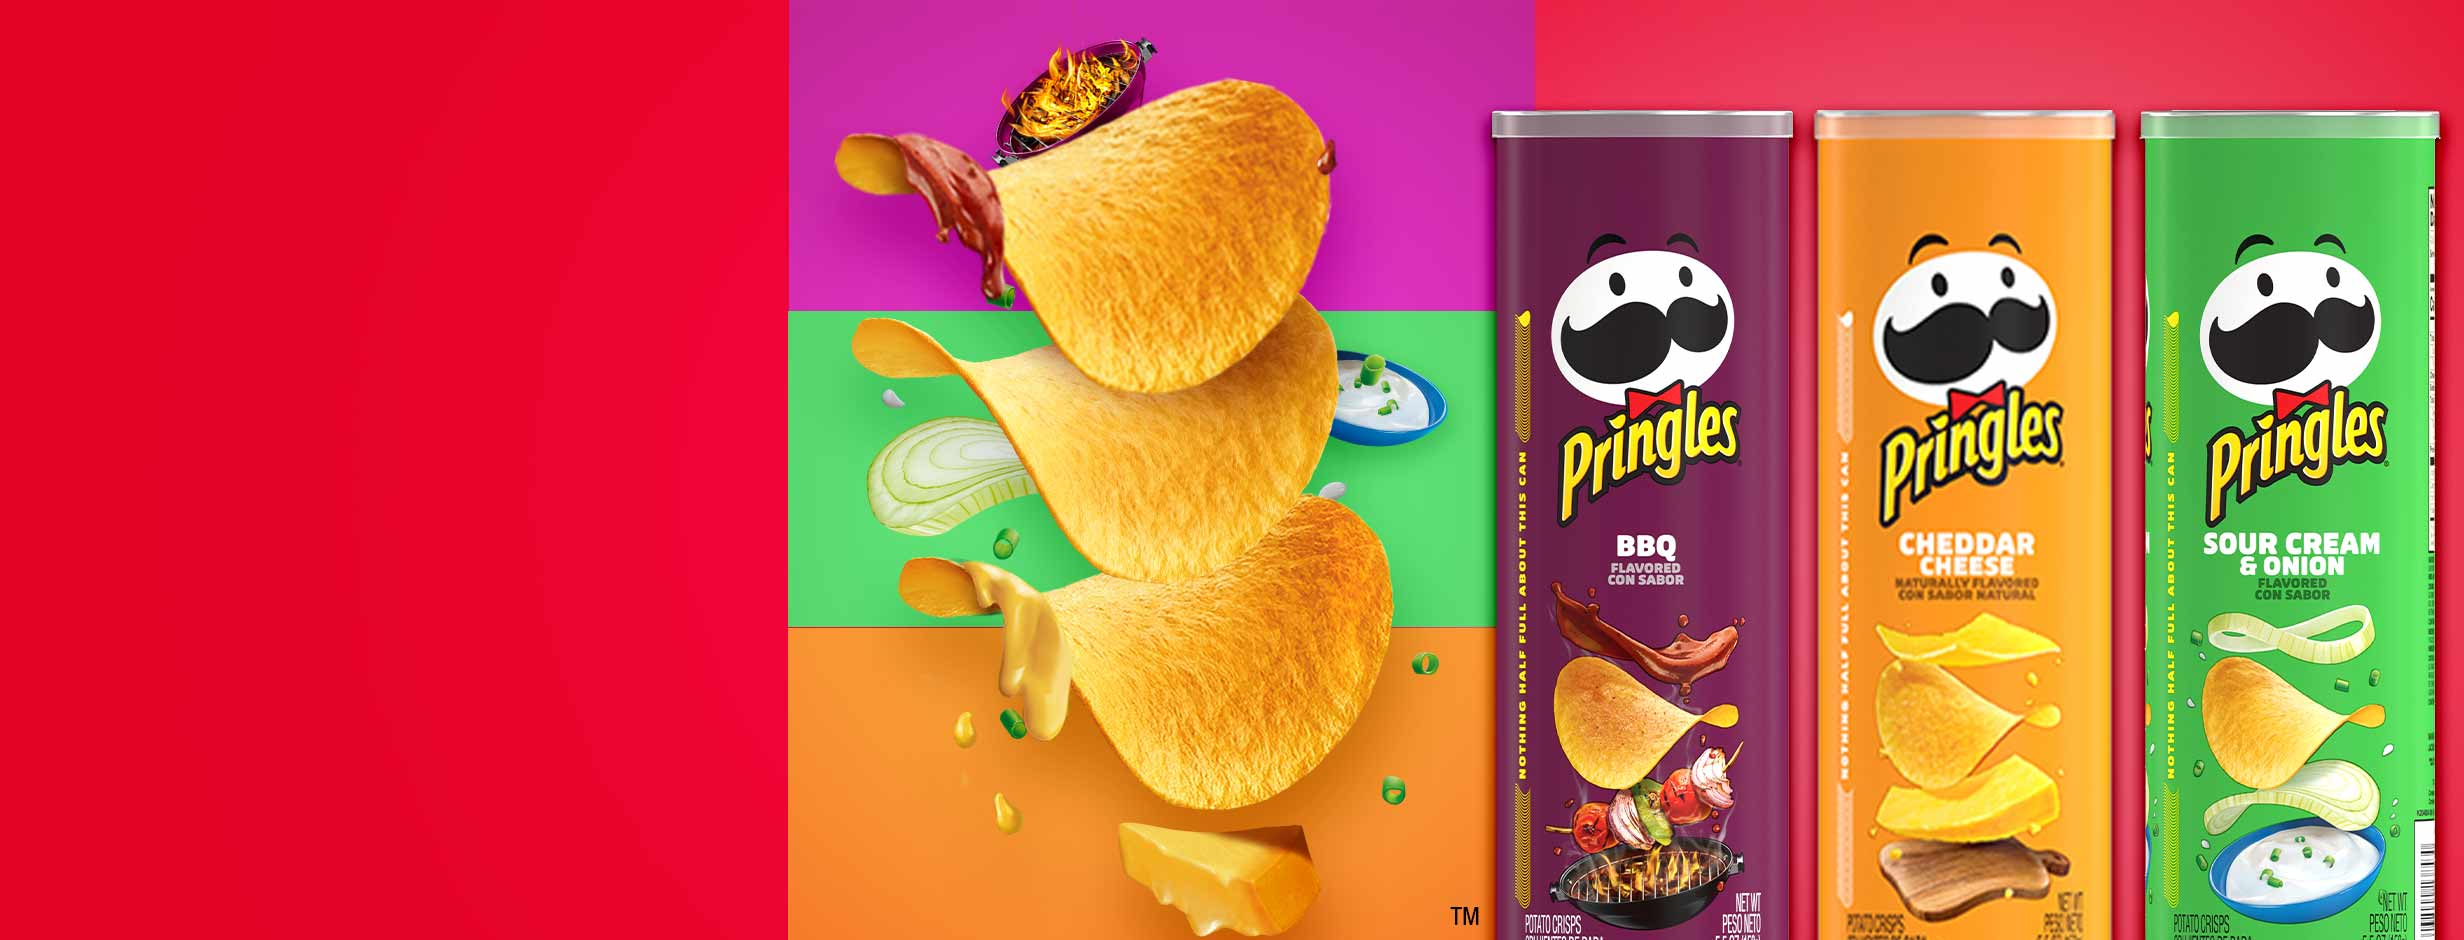 Stack up the flavors with Pringles to create your own three layer dip stack. Shop now and get stacking.